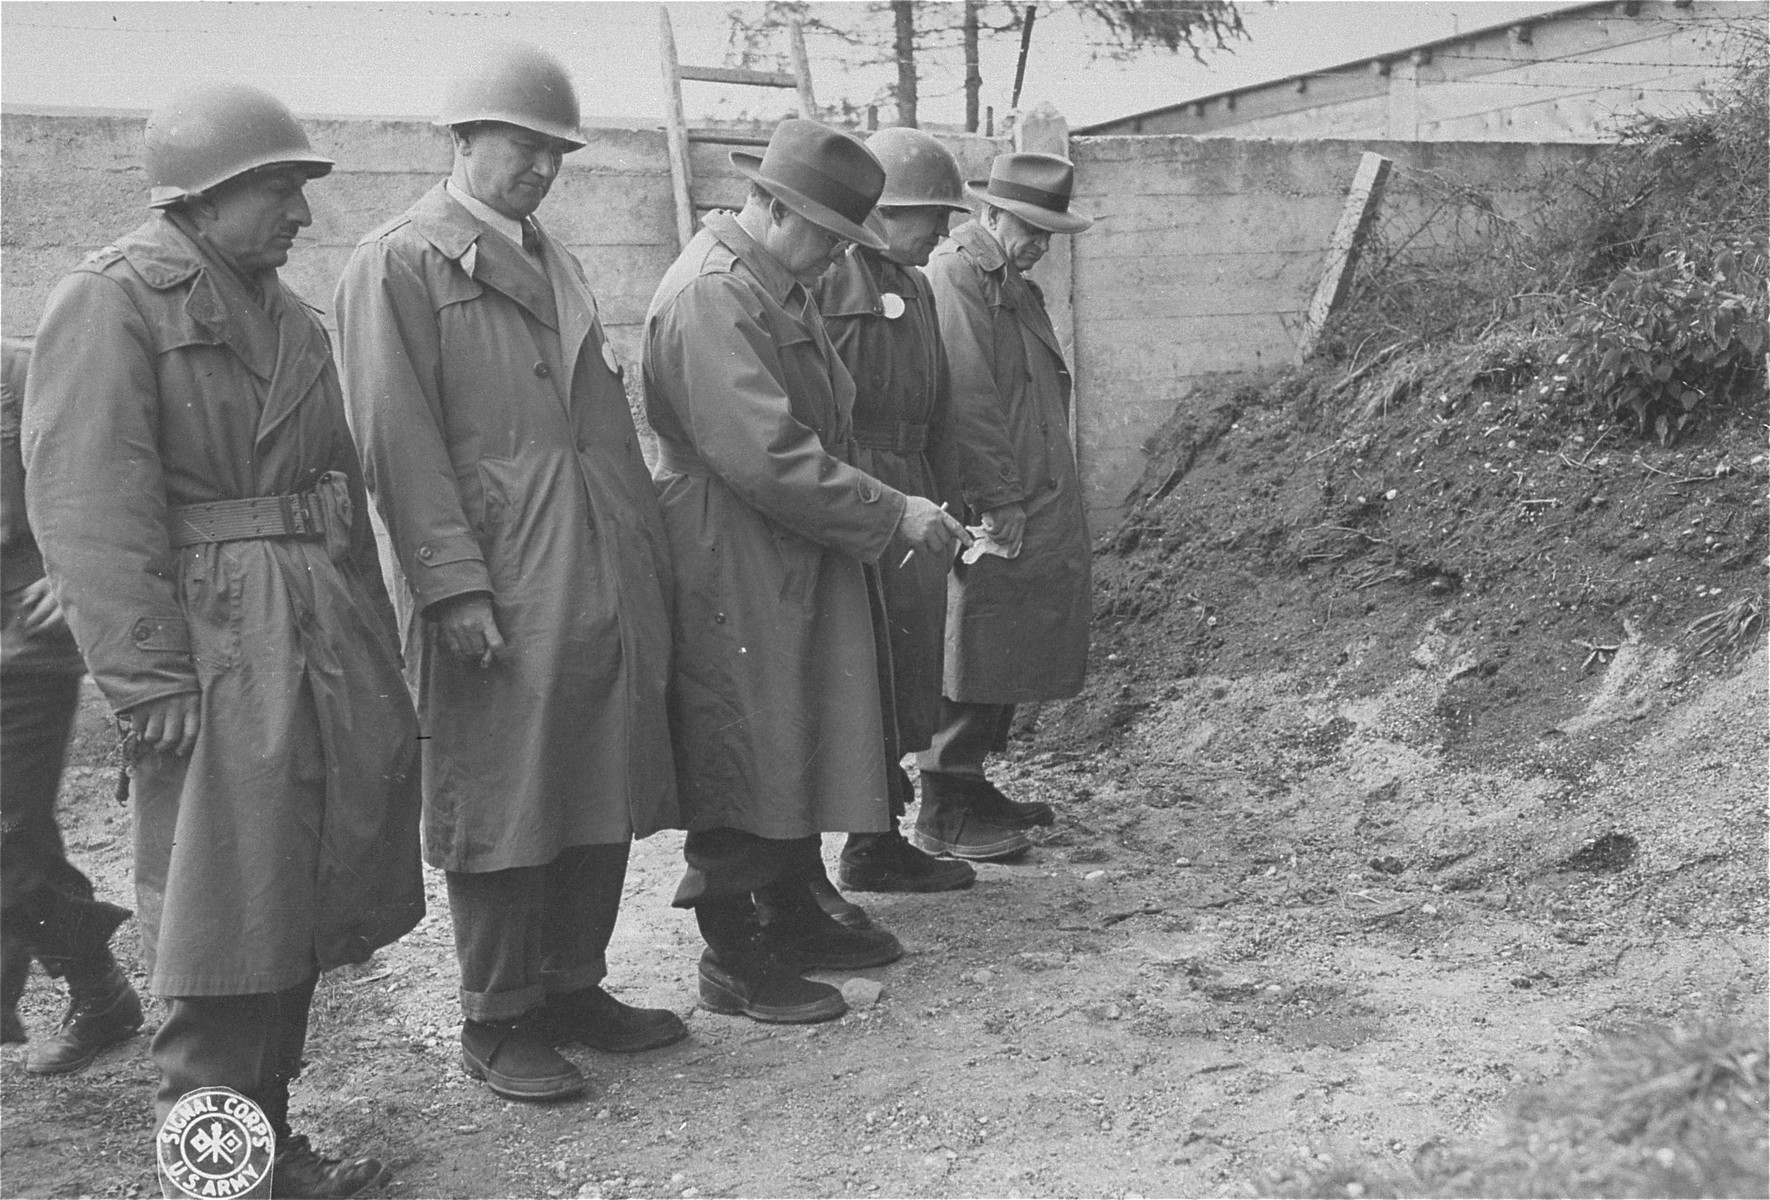 Members of a U.S. Congressional party investigating Nazi POW atrocities view a spot where POWs were shot.  Sen. C. Wayland Brooks points to a spot saturated with blood. With him are Maj. Gen. Wilton B. Persons, who is conducting the tour, Rep. James Richards, Rep. John Vorys, Sen. James Richards and Sen. Kenneth S. Wherry.